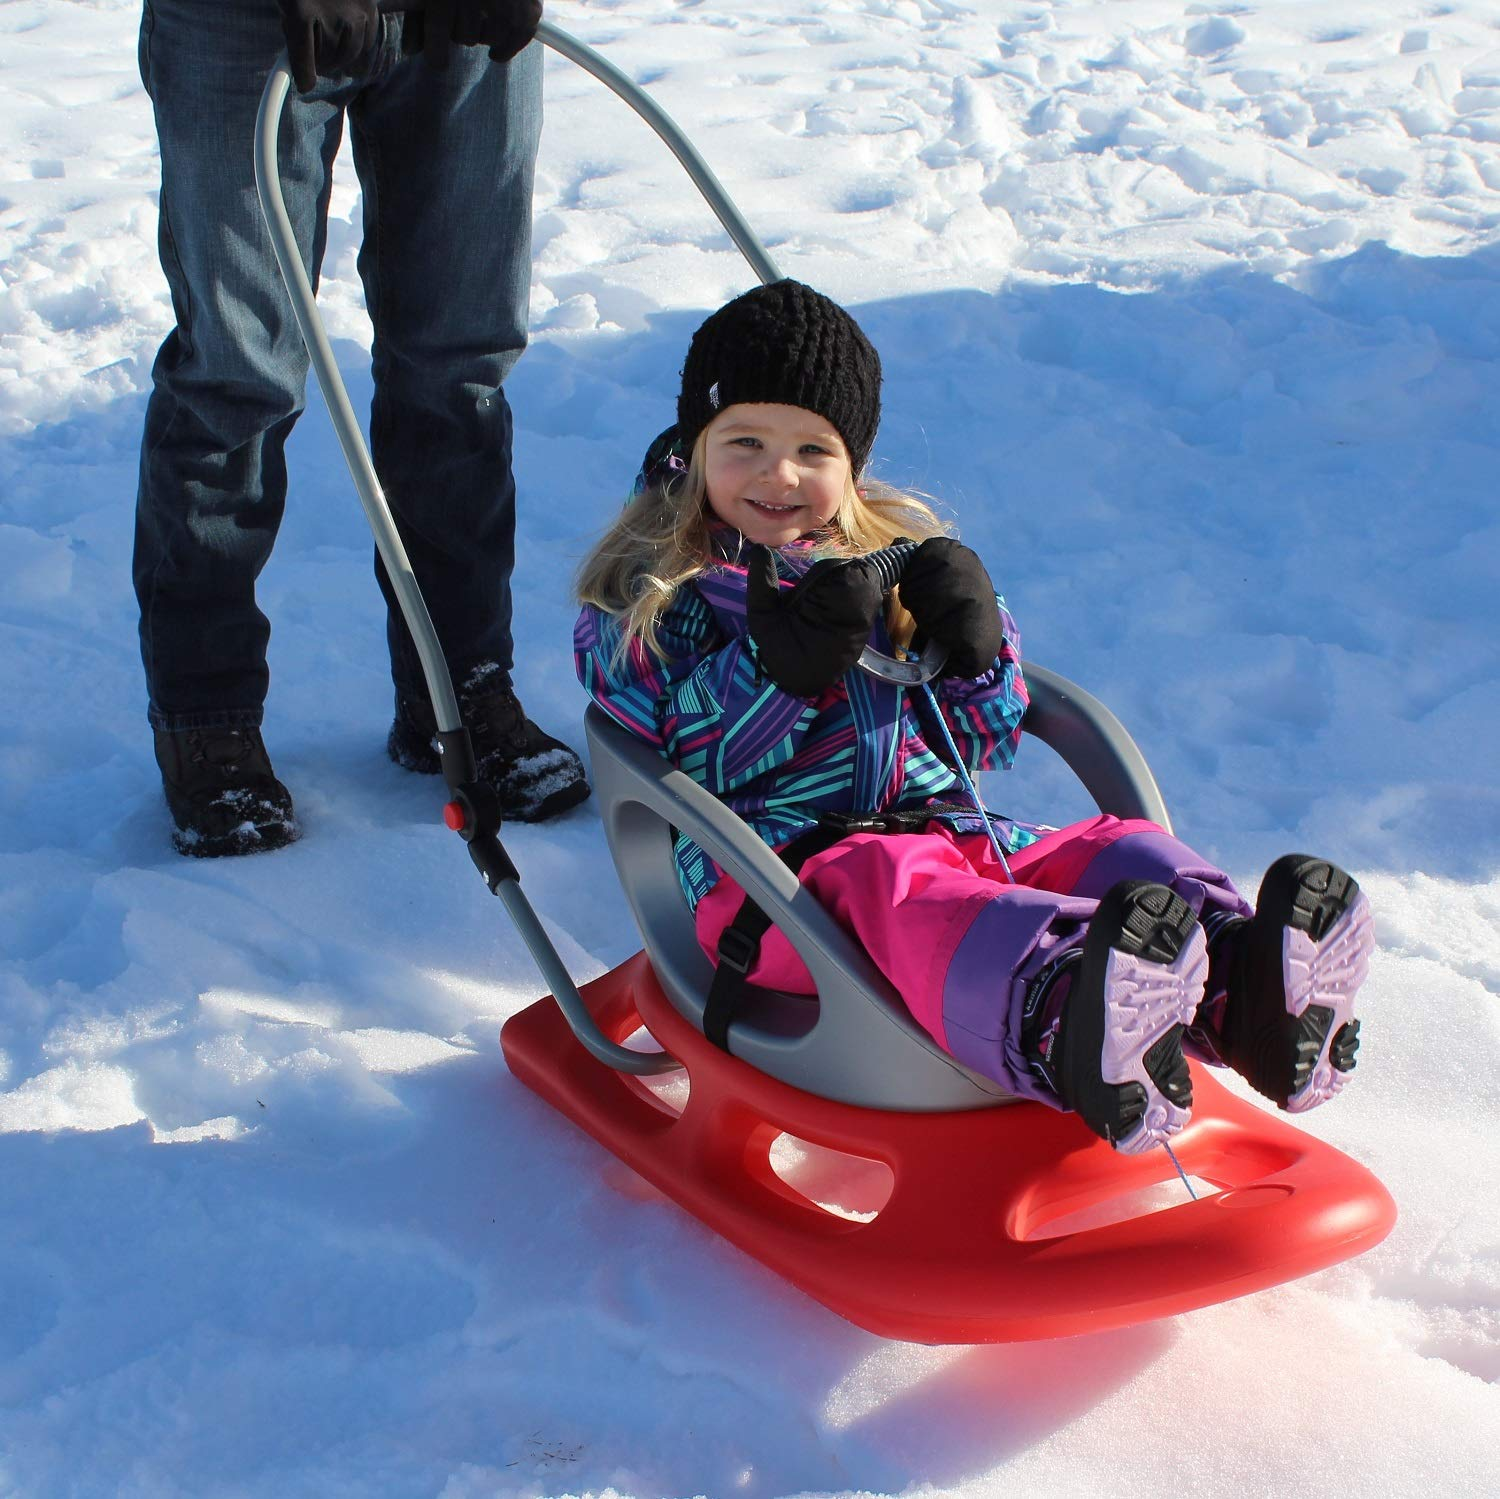 Top 8 Best Sleds For Toddlers (2019 Reviews) 8